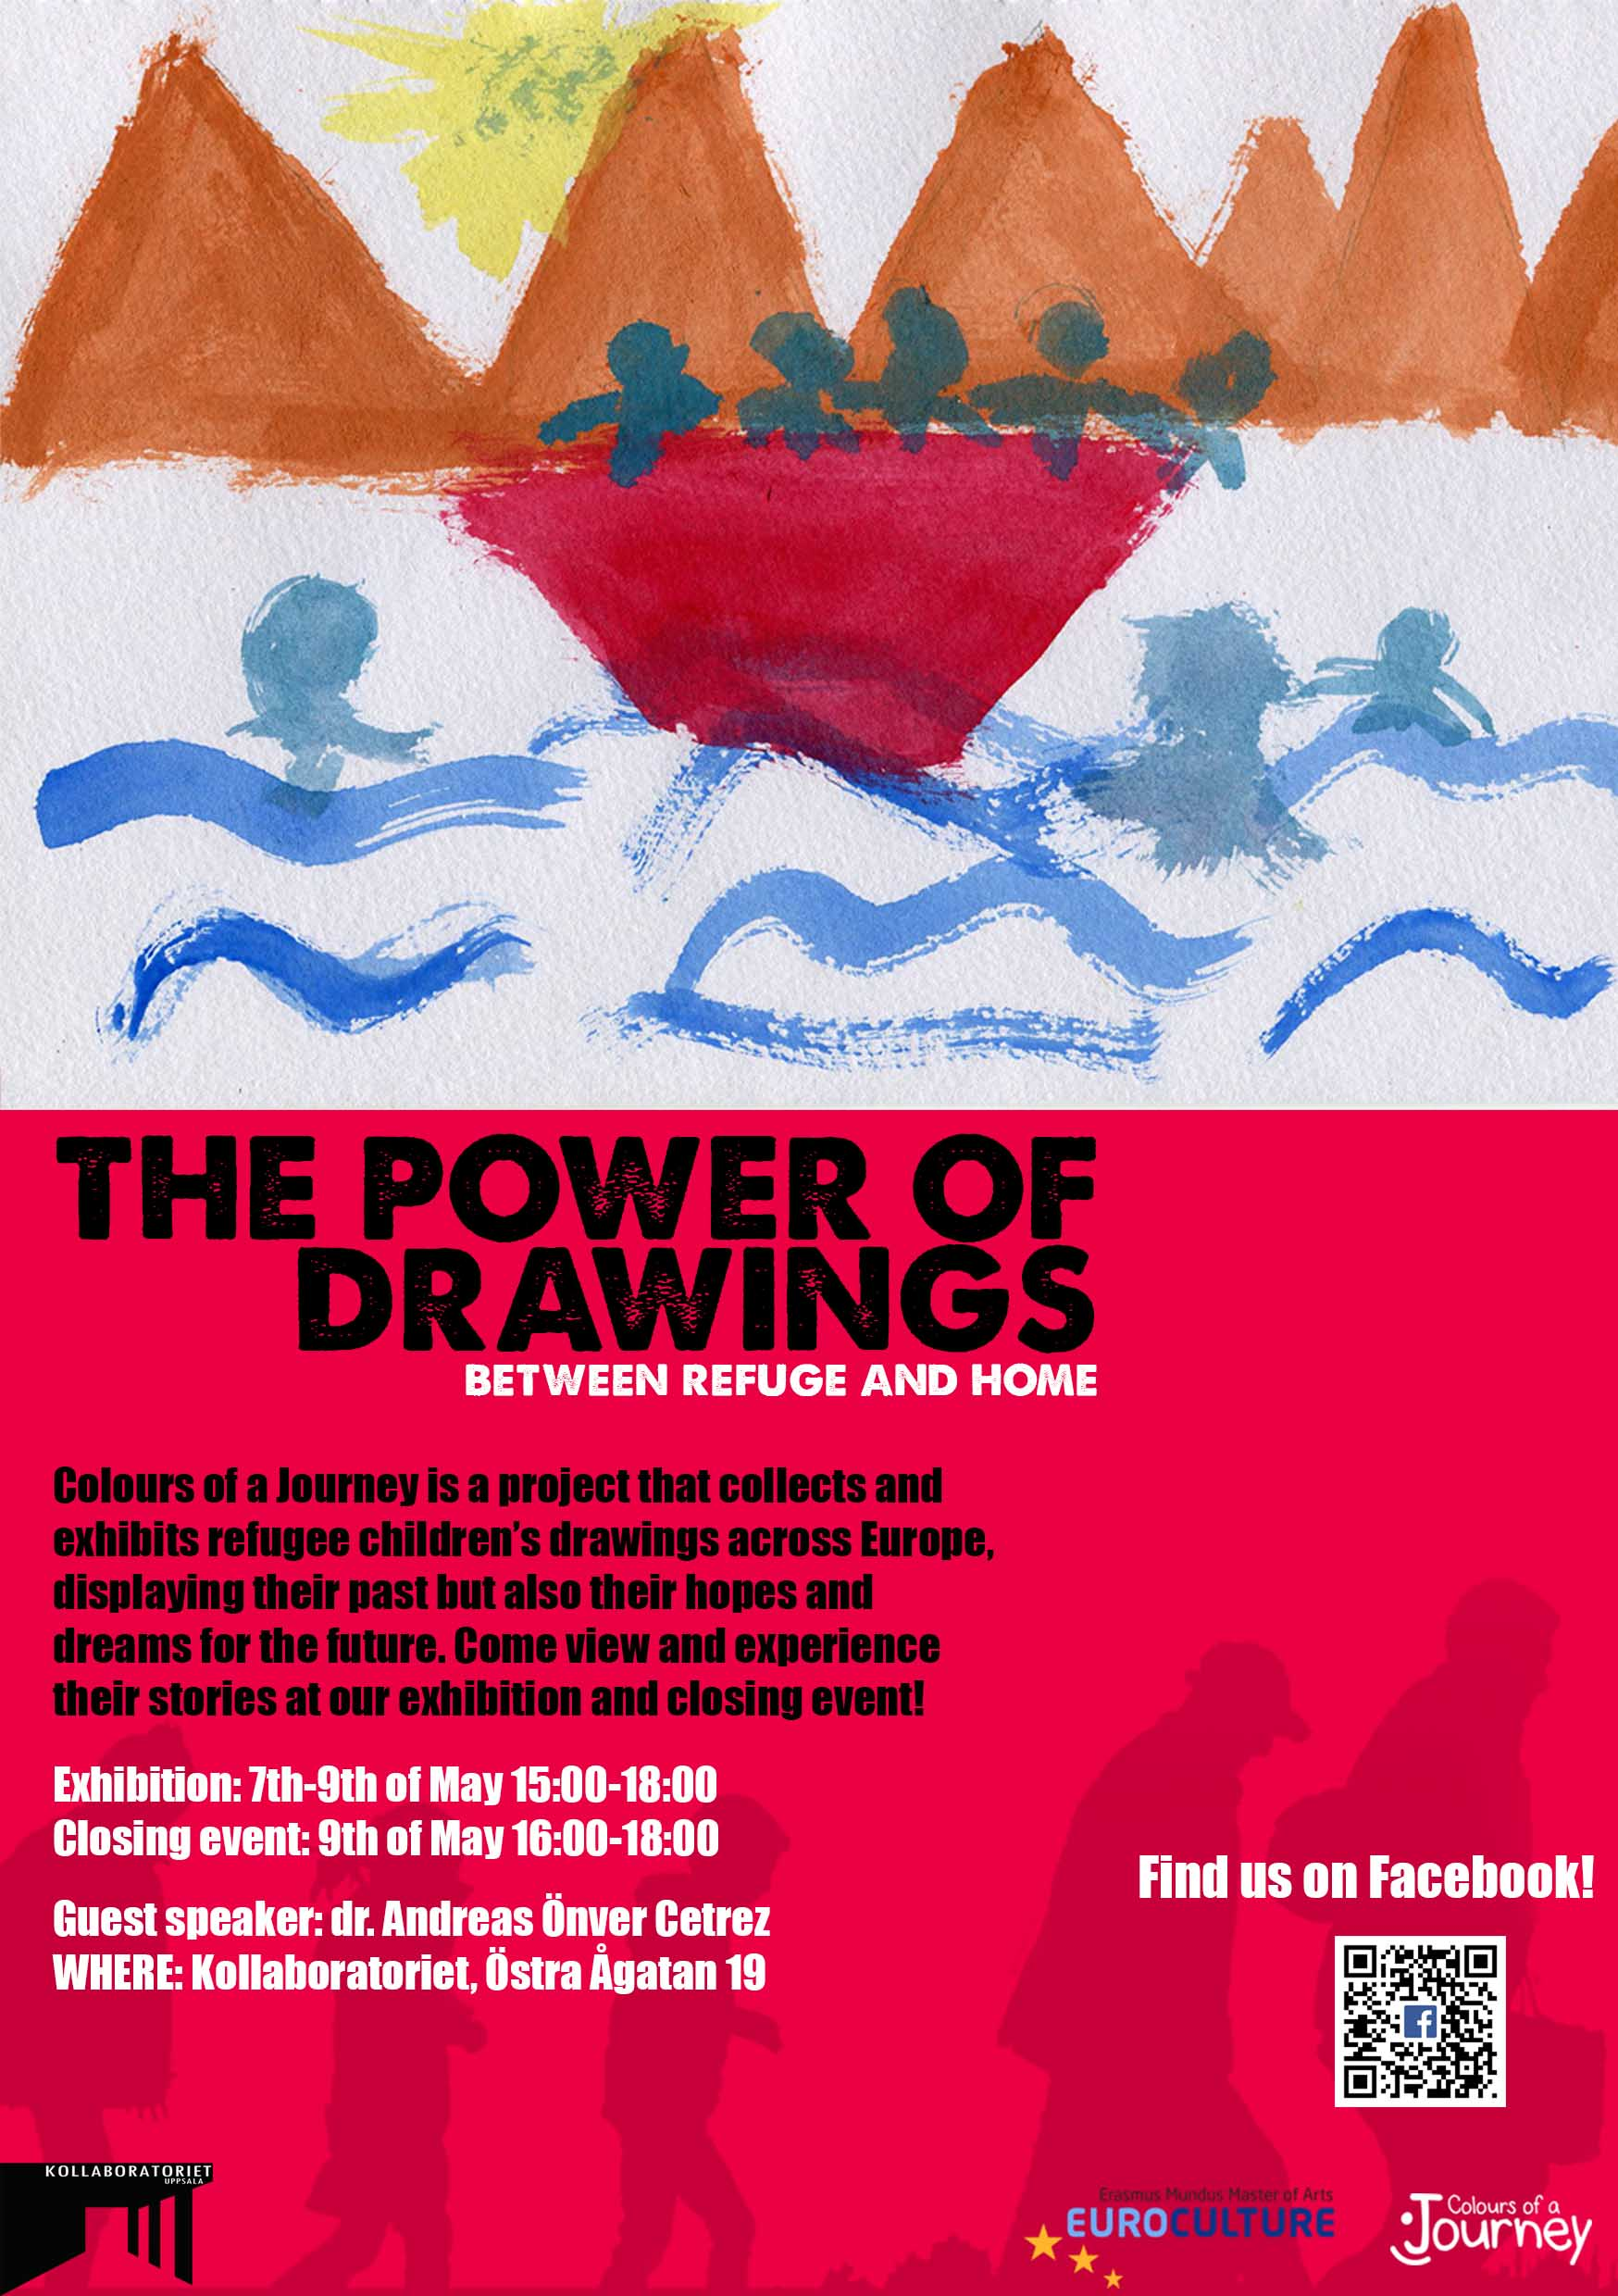 The Power of Drawings: Between Refuge and Home